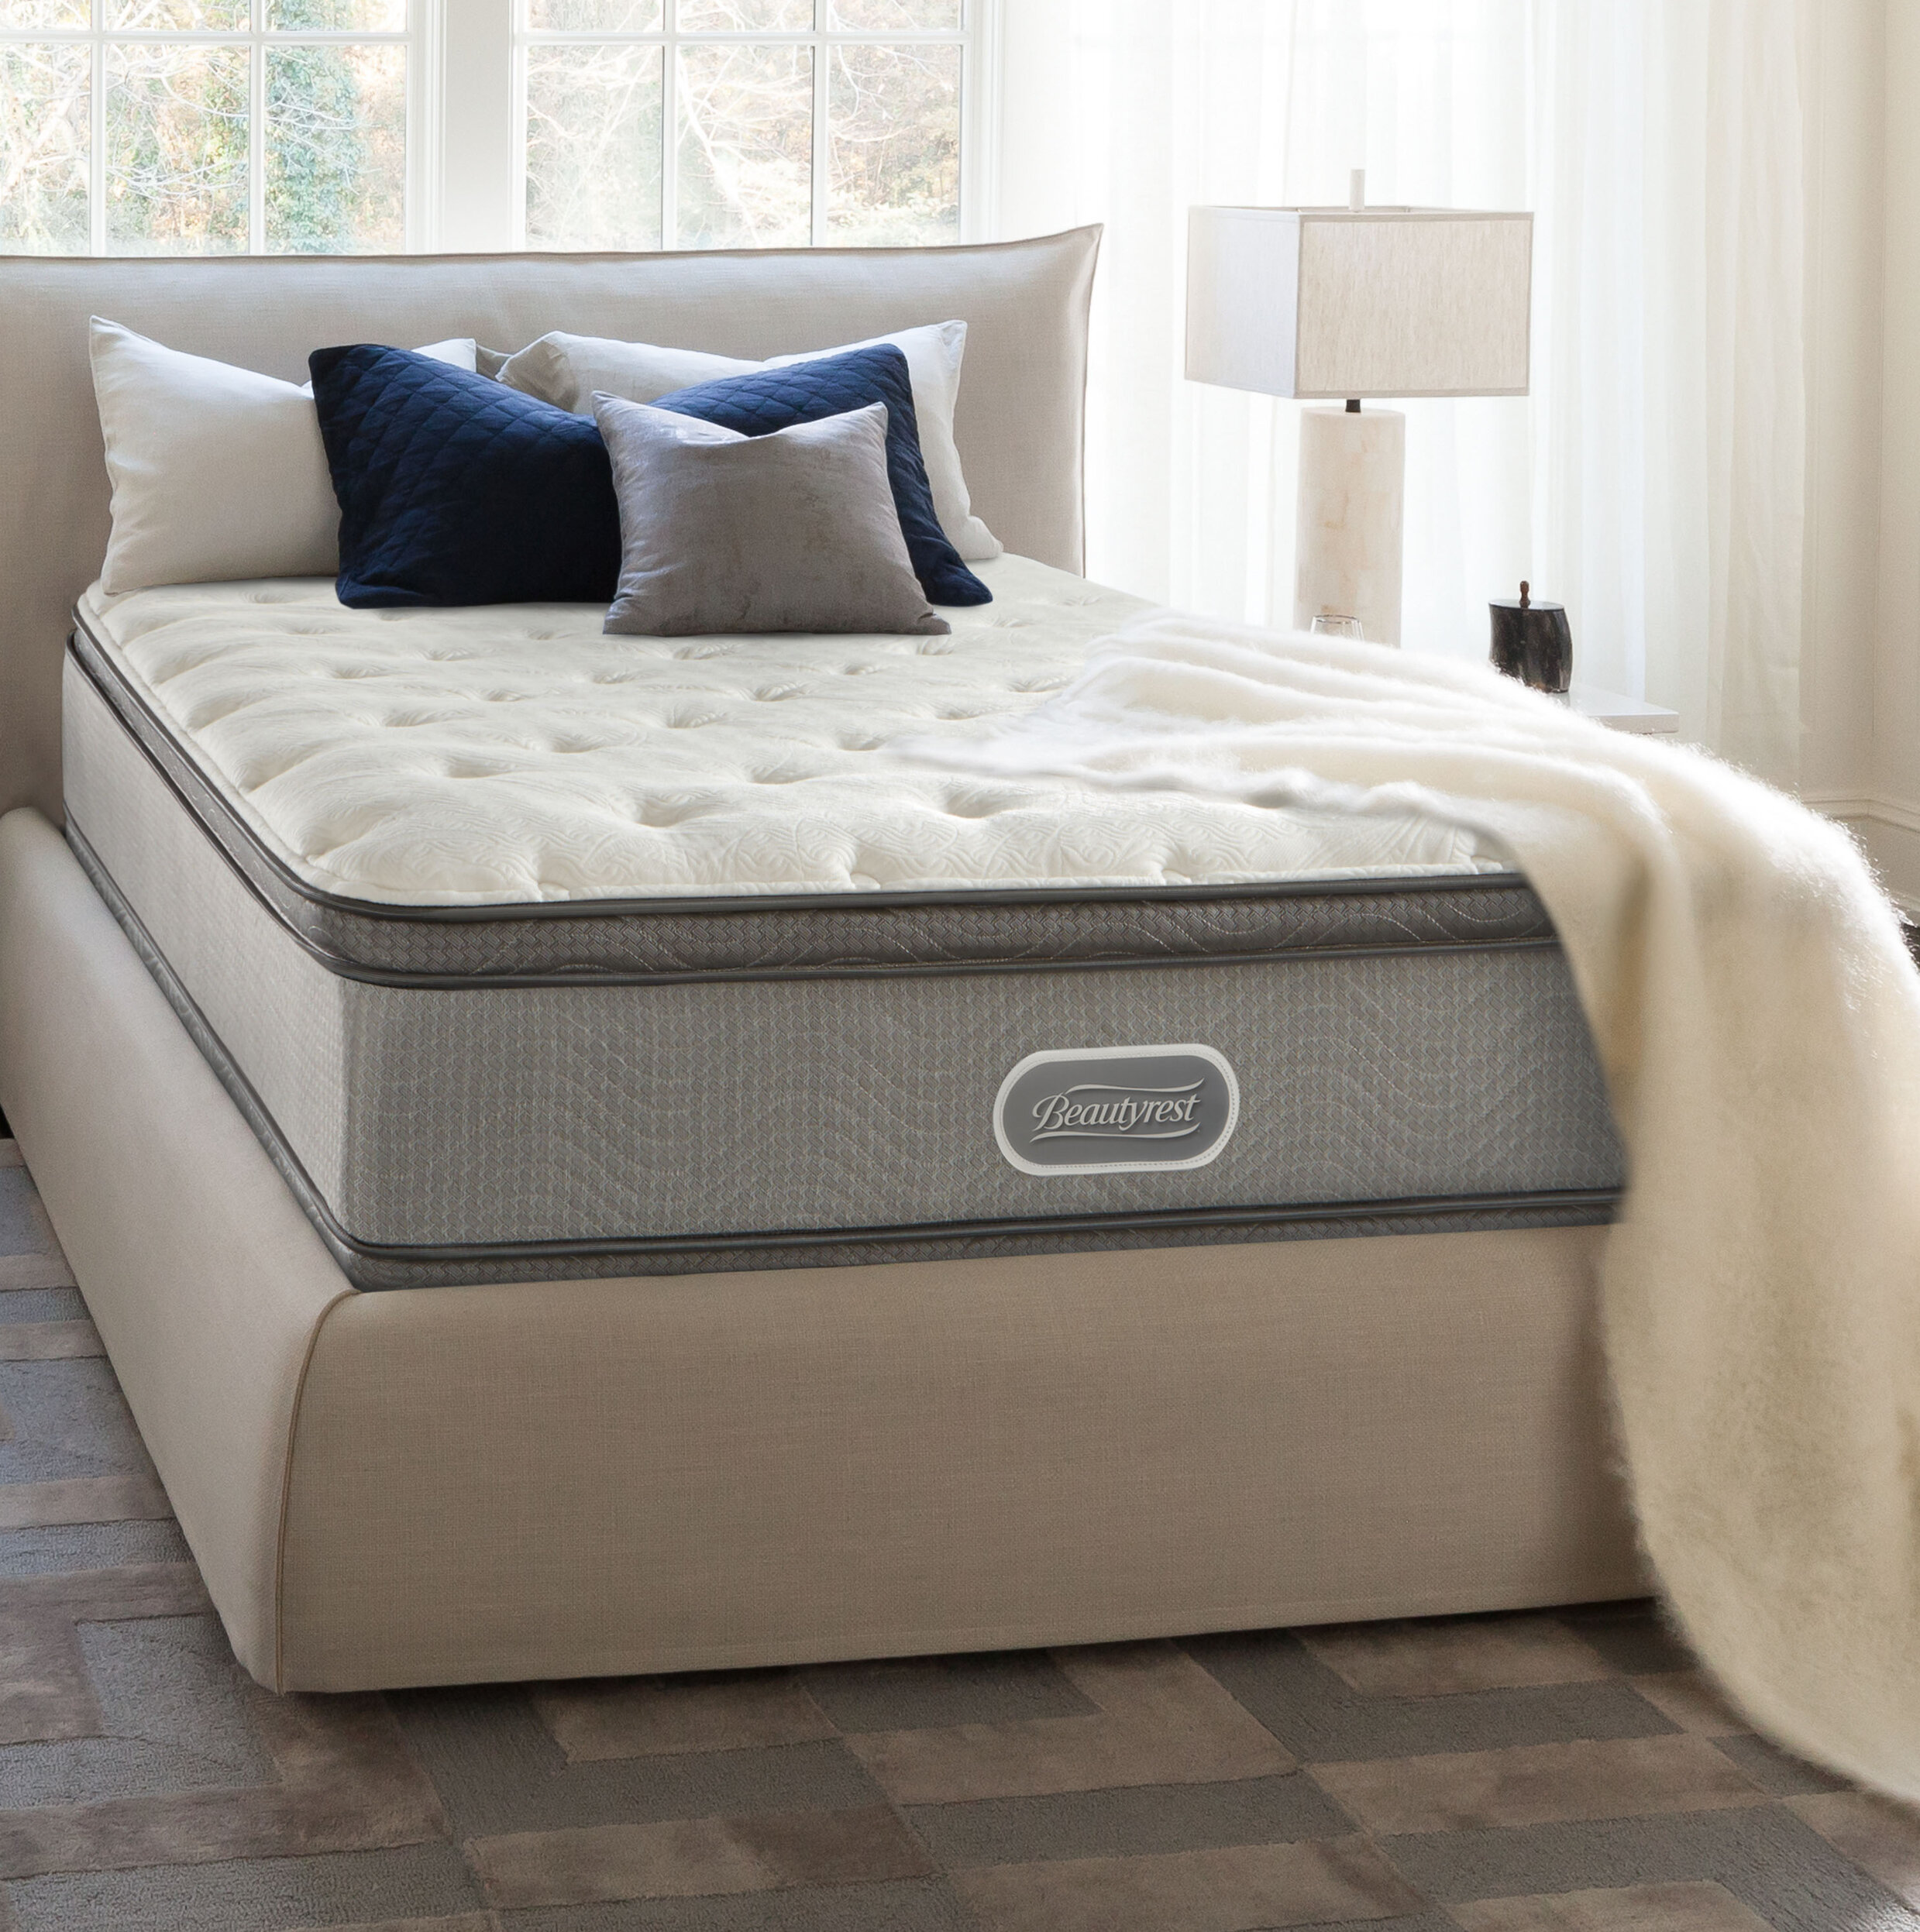 mattress of euro performance top plush pillow sealy elegant topper king unique response inch serta size